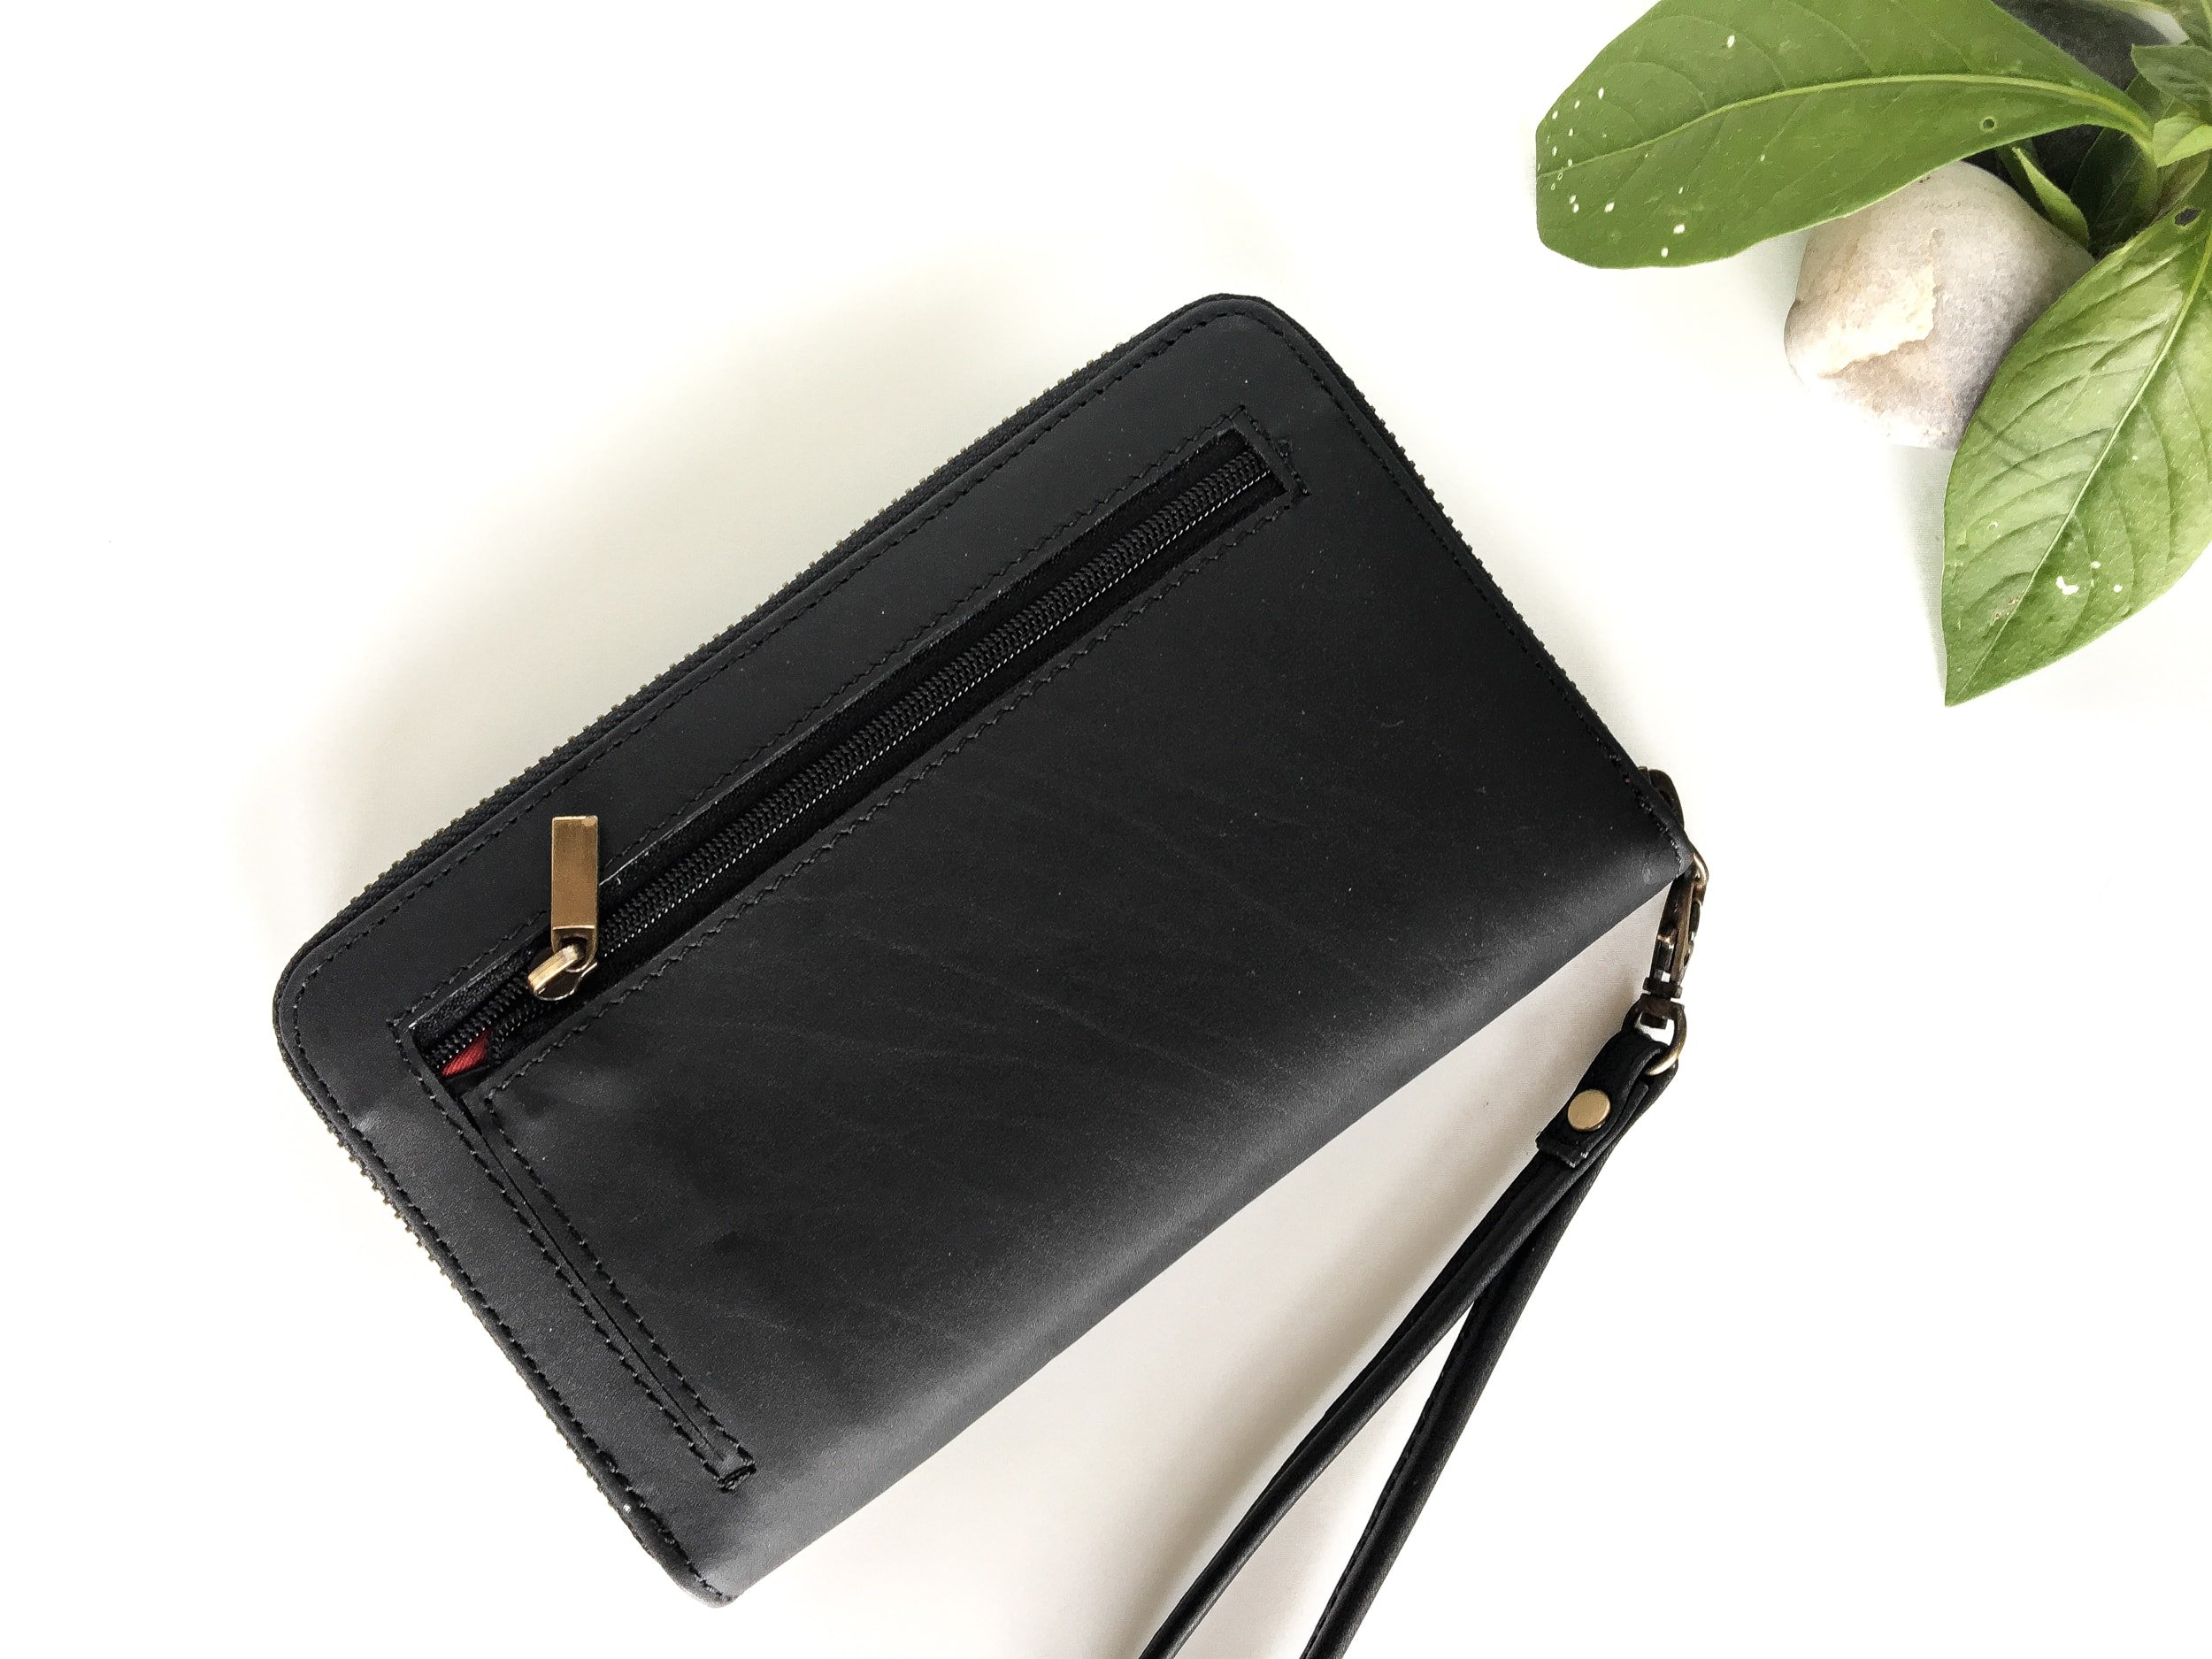 Clovve Handmade Buffalo Leather Women's Wristlet, 7 Inches| Classical Monochrome Luxury Range | Casual purse for outings, dates, and parties | Monochrome Black by Clovve (Image #2)